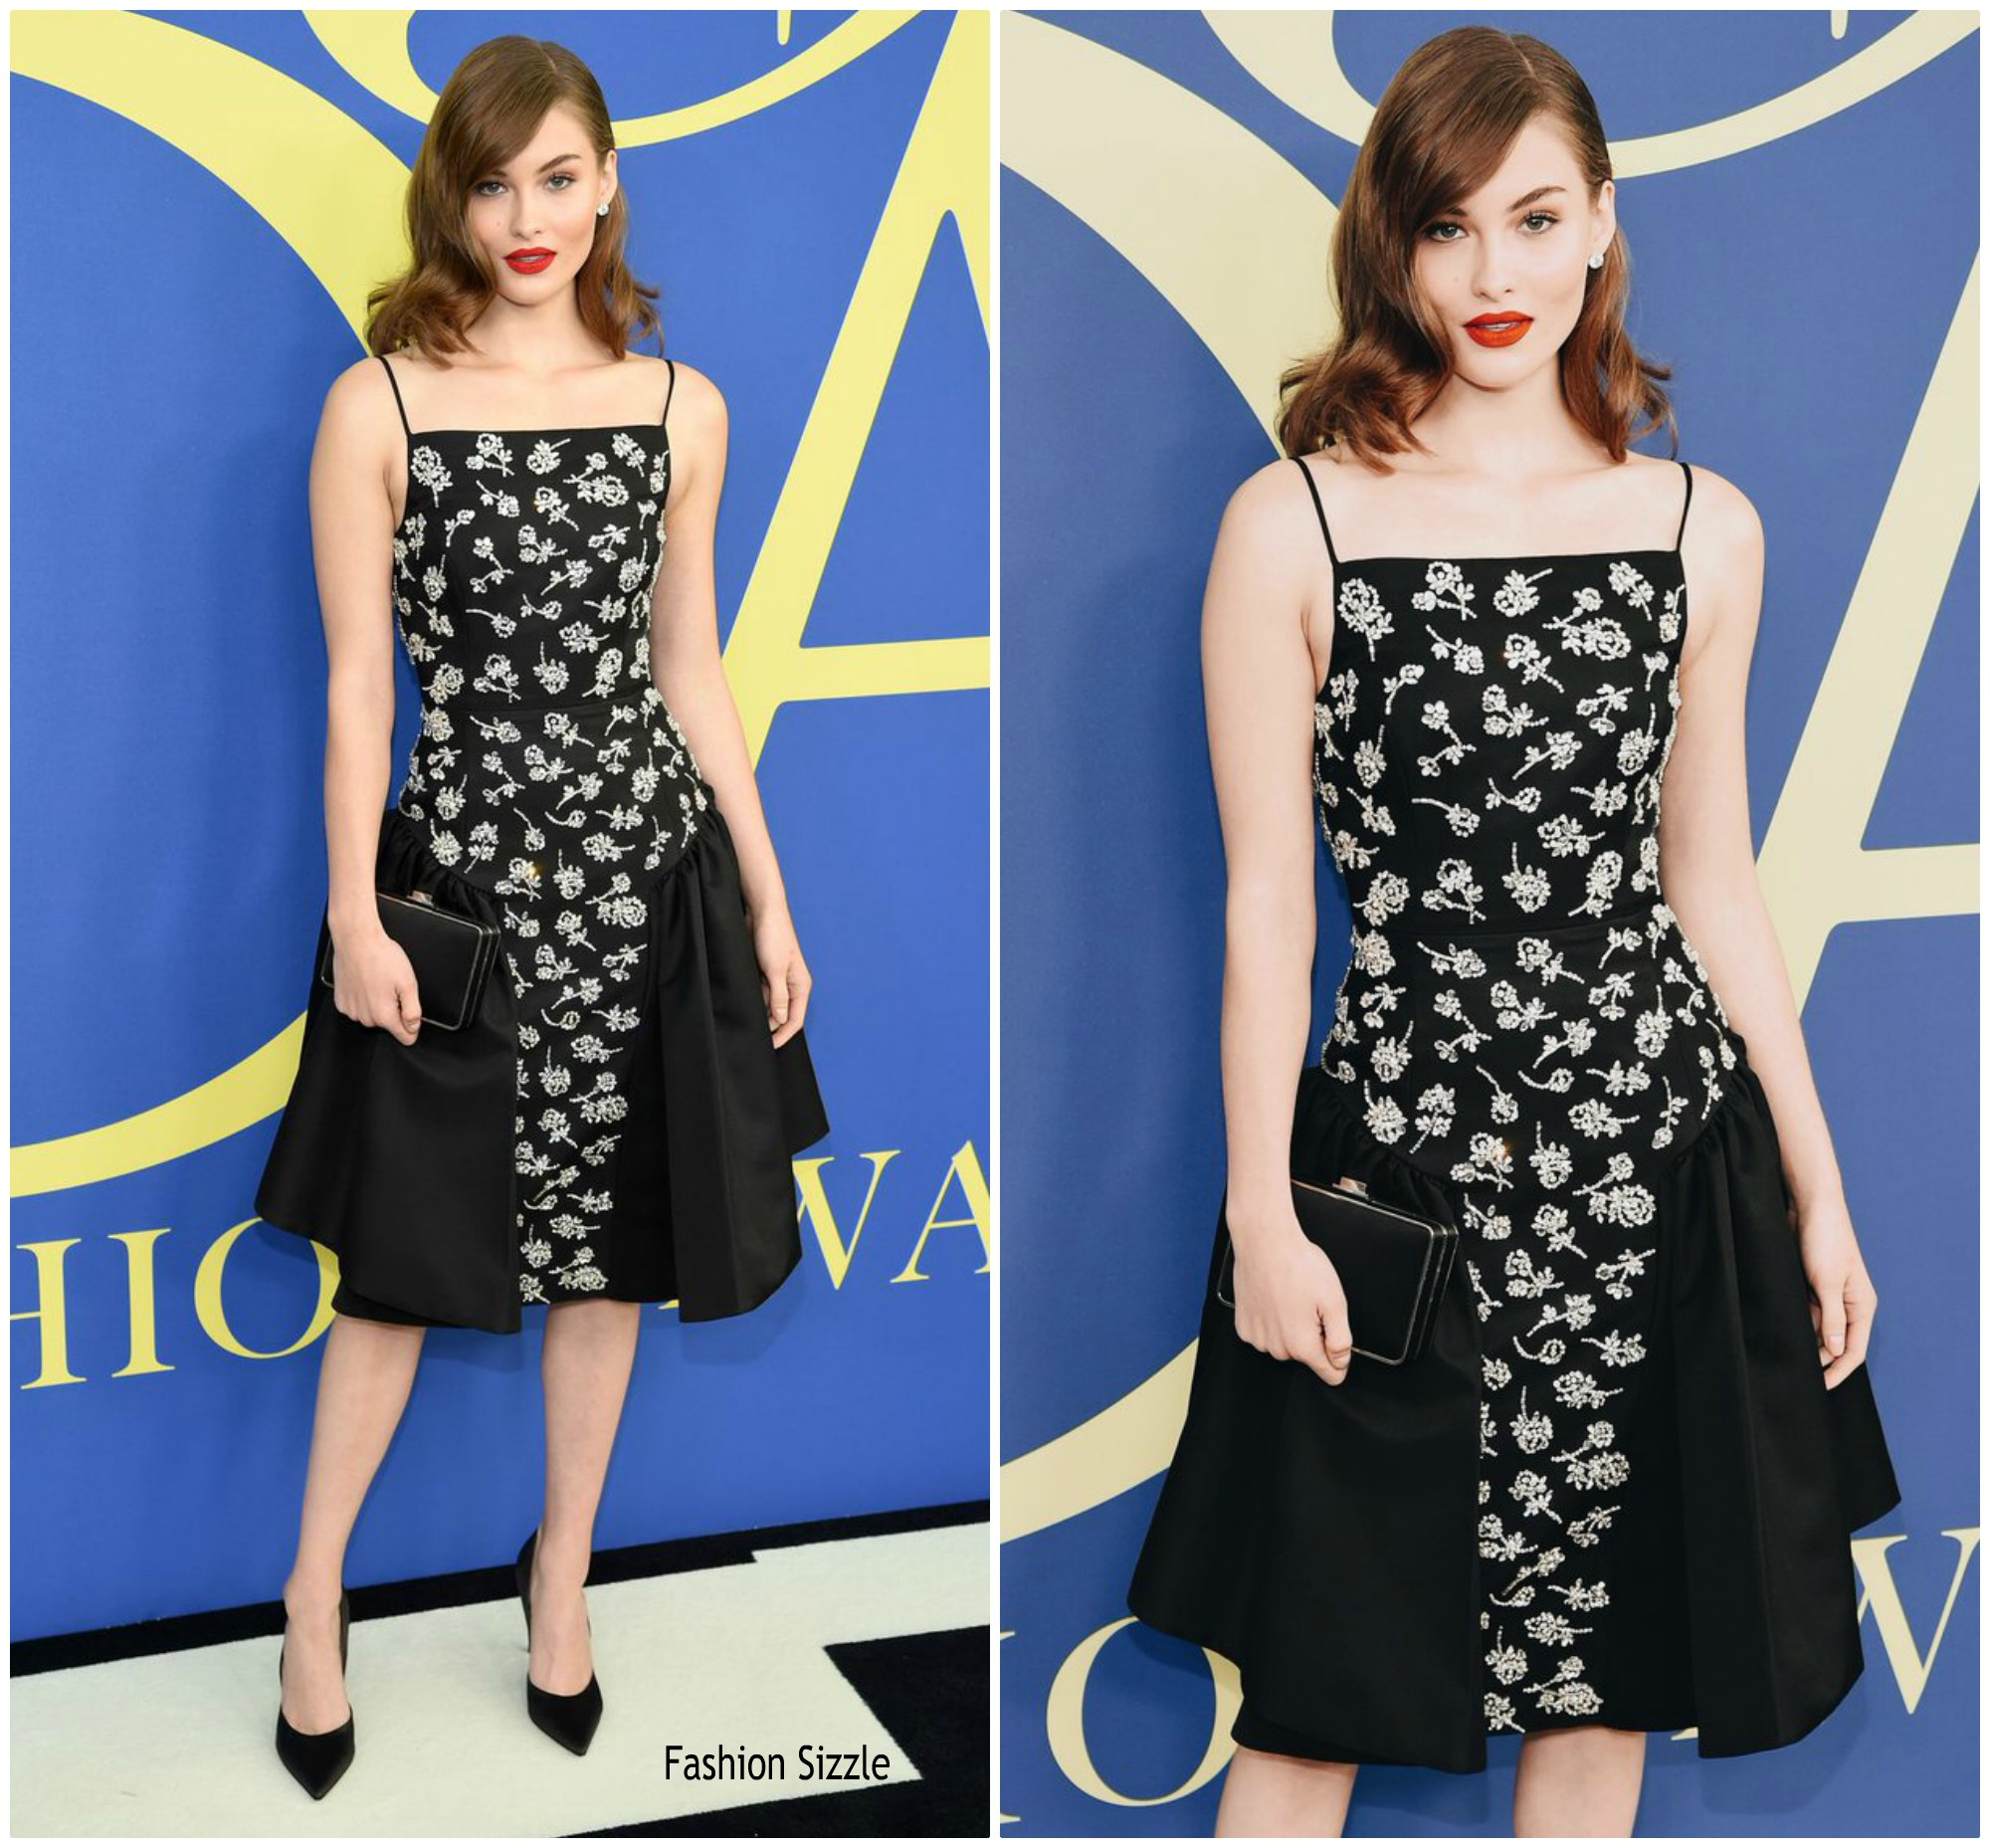 grace-elizabeth-in-michael-kors-collection-2018-cfda-fashion-awards